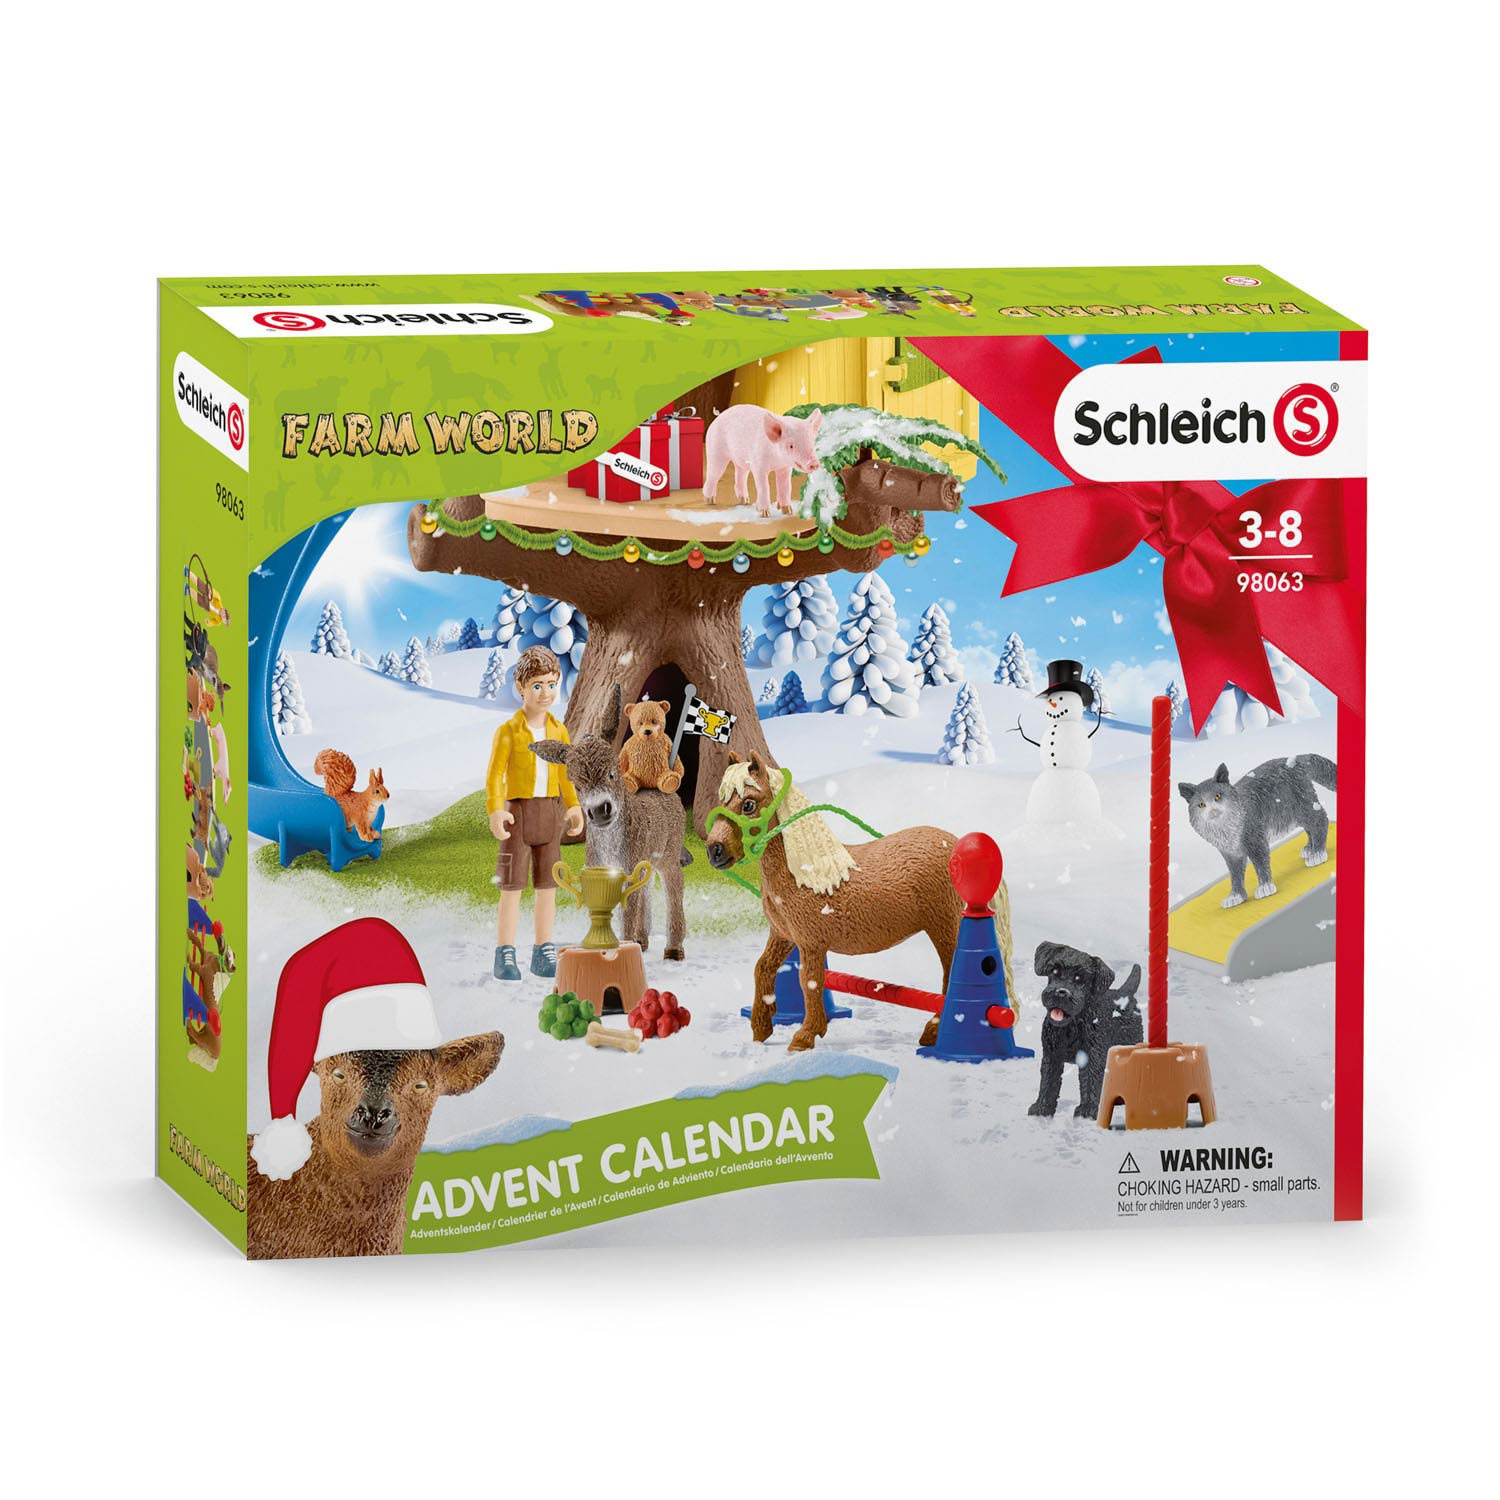 Schleich Adventskalender Farm World 2020